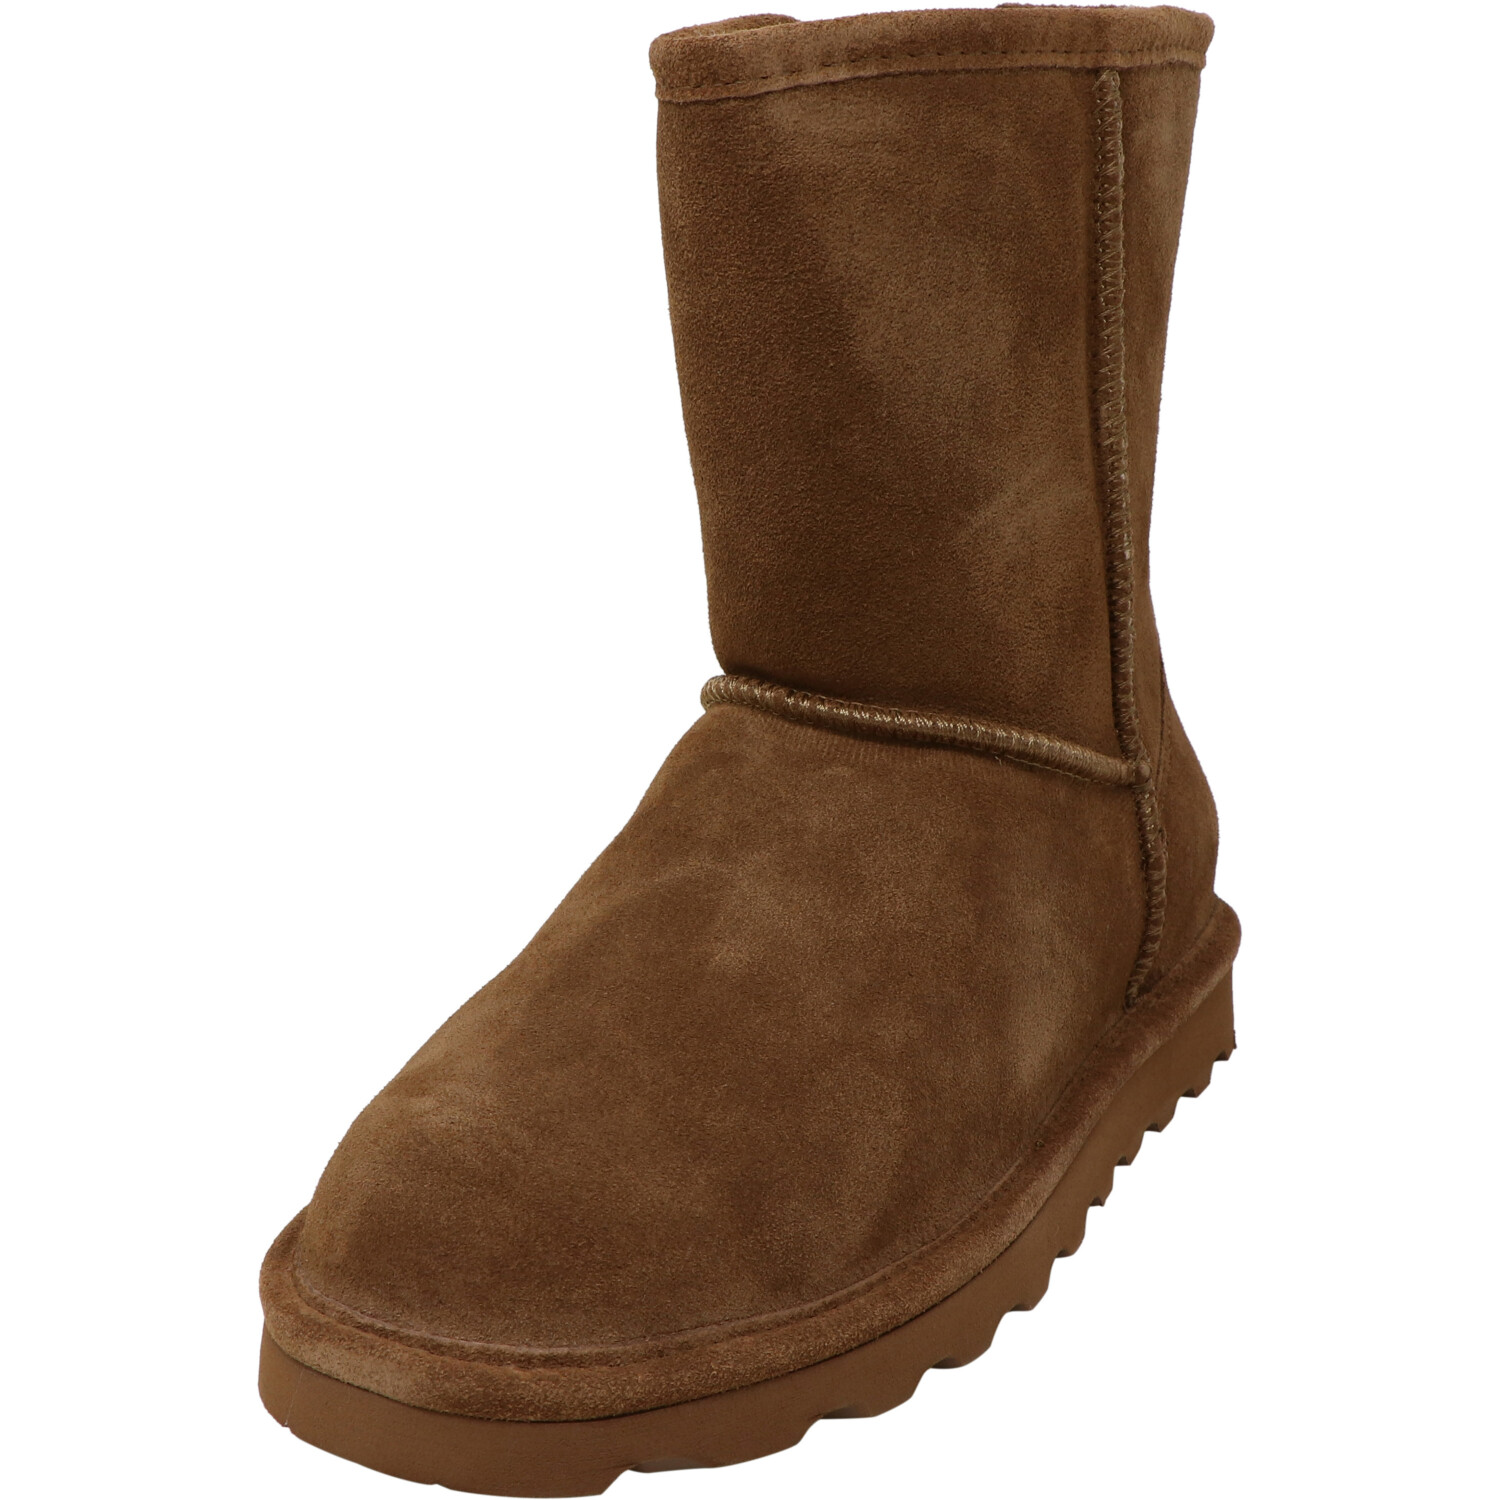 Bearpaw Elle Hickory Mid-Calf Suede Snow Boot - 7M